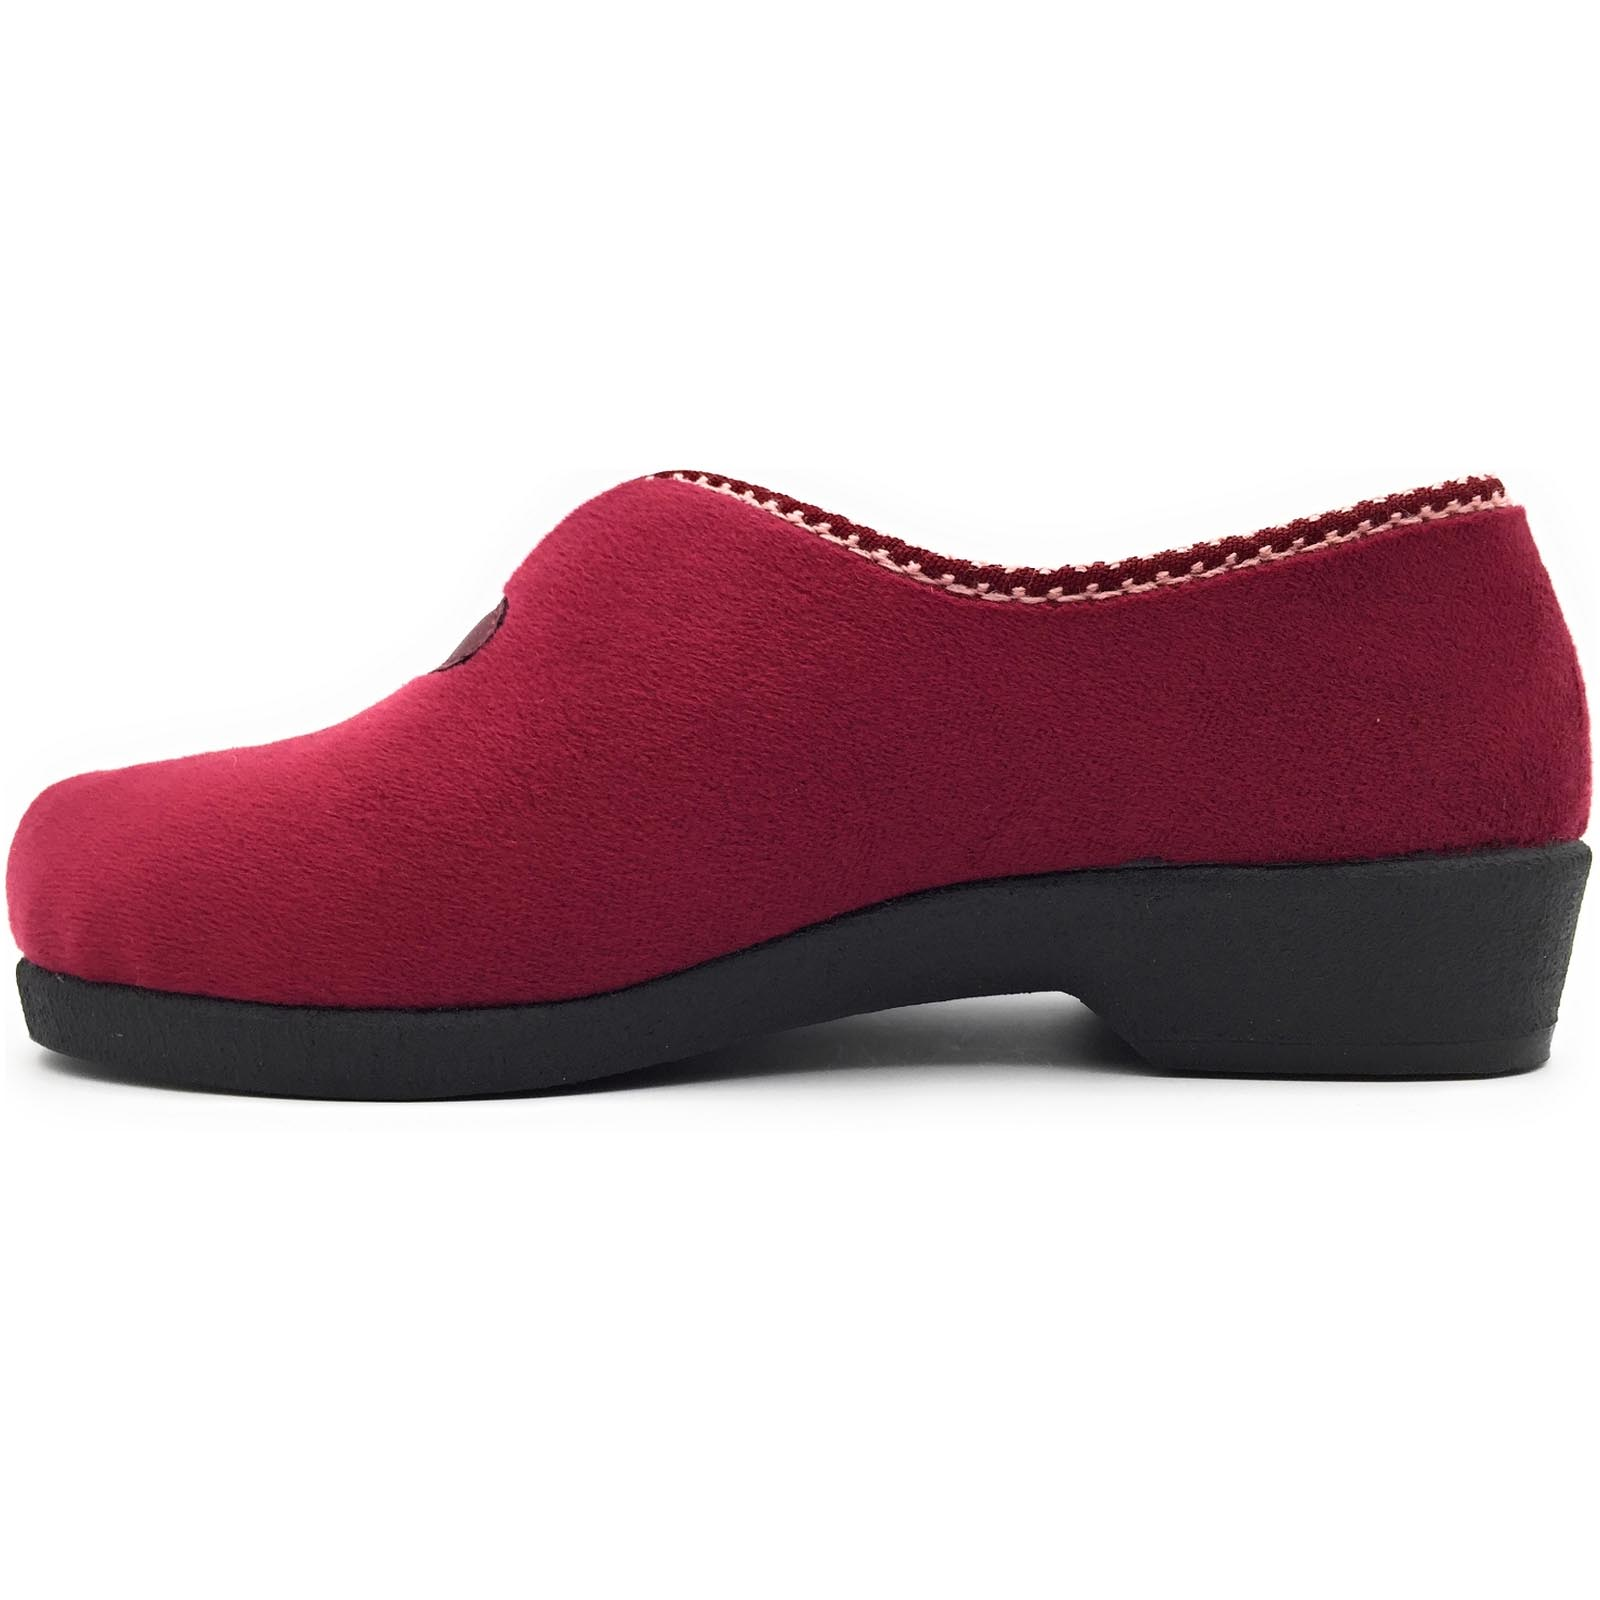 Fargeot chaussons obelie rouge1009002_6